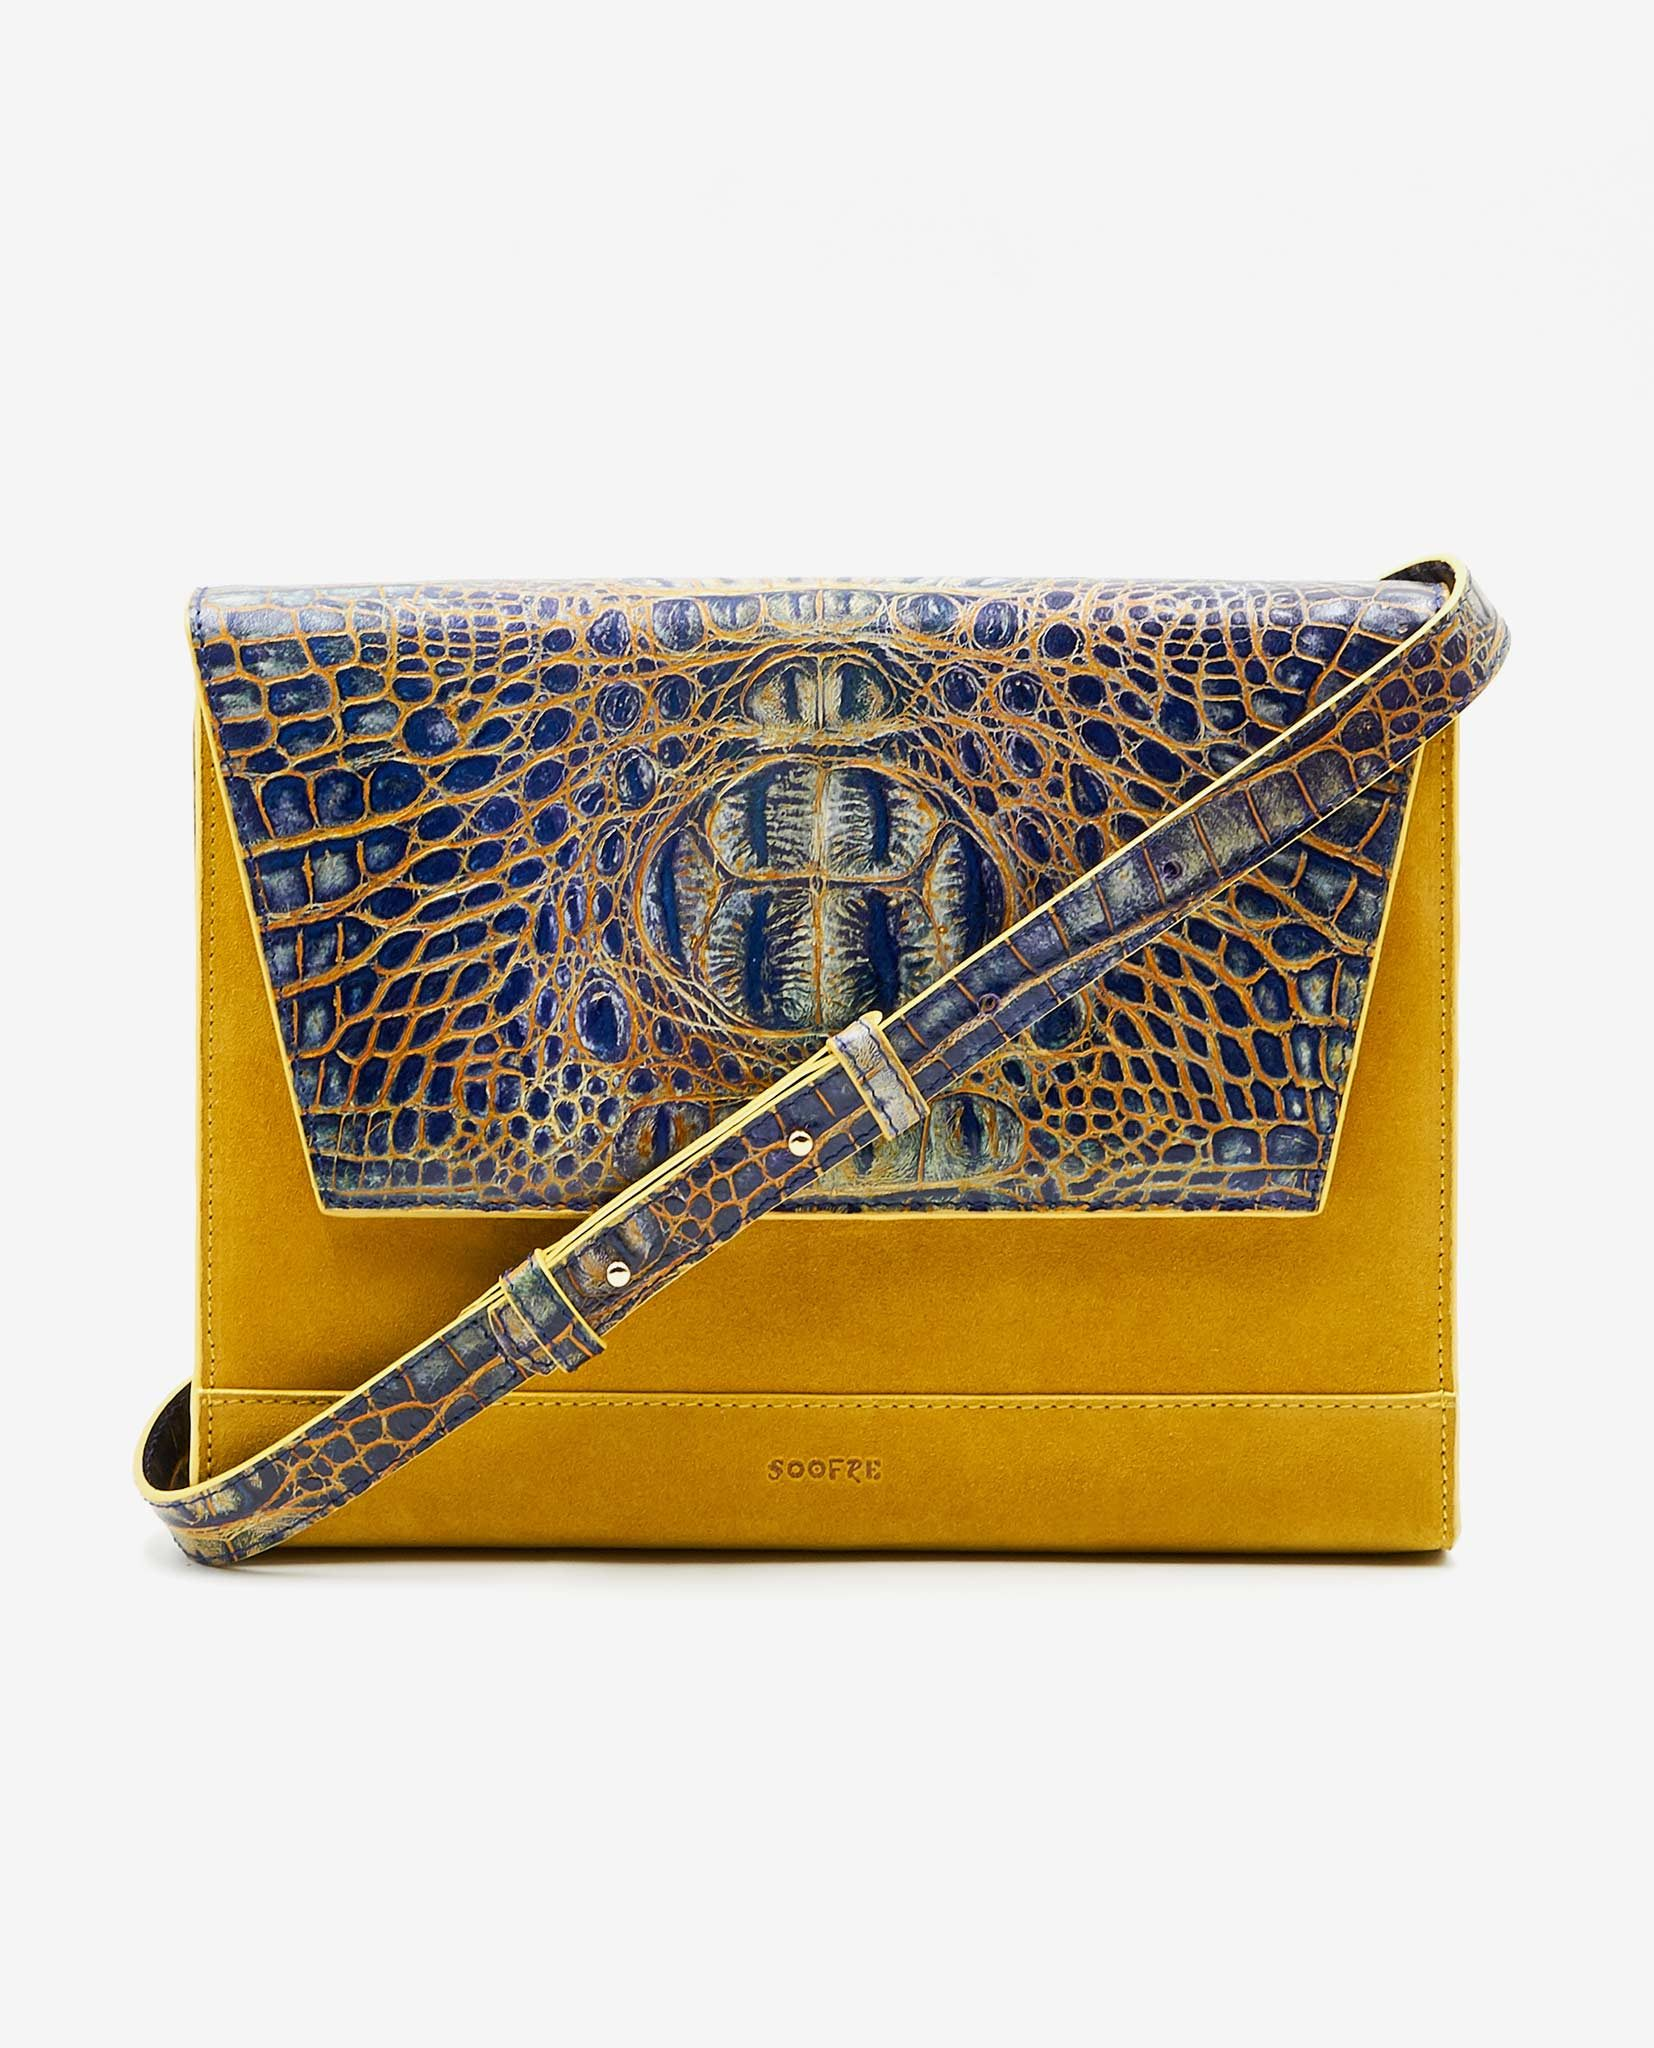 SOOFRE-Berlin-unique-Clutch-croco-yellow-yellow-FRONT2